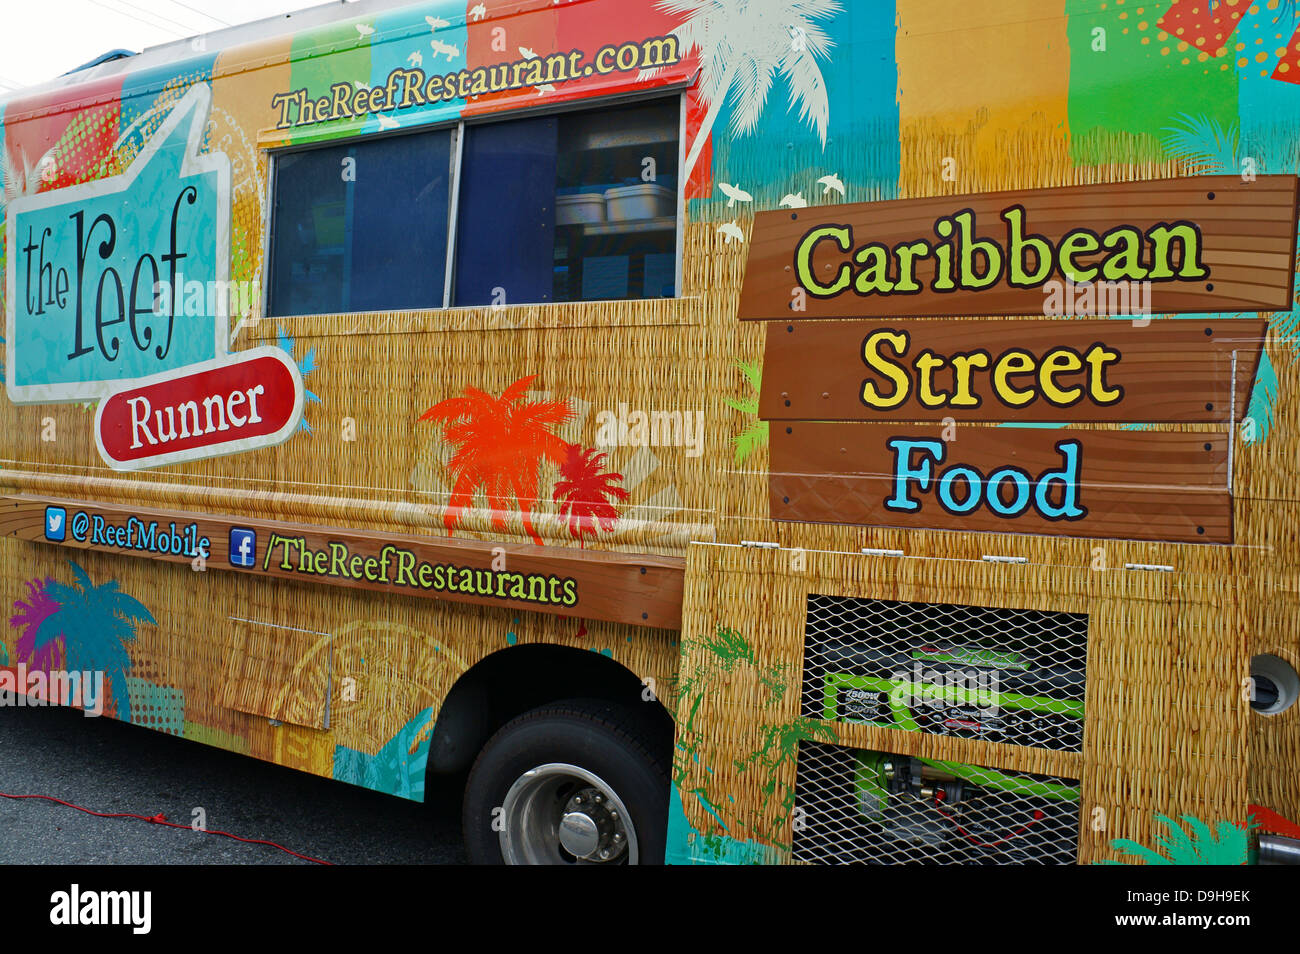 Caribbean street food truck in Vancouver, BC, Canada. - Stock Image